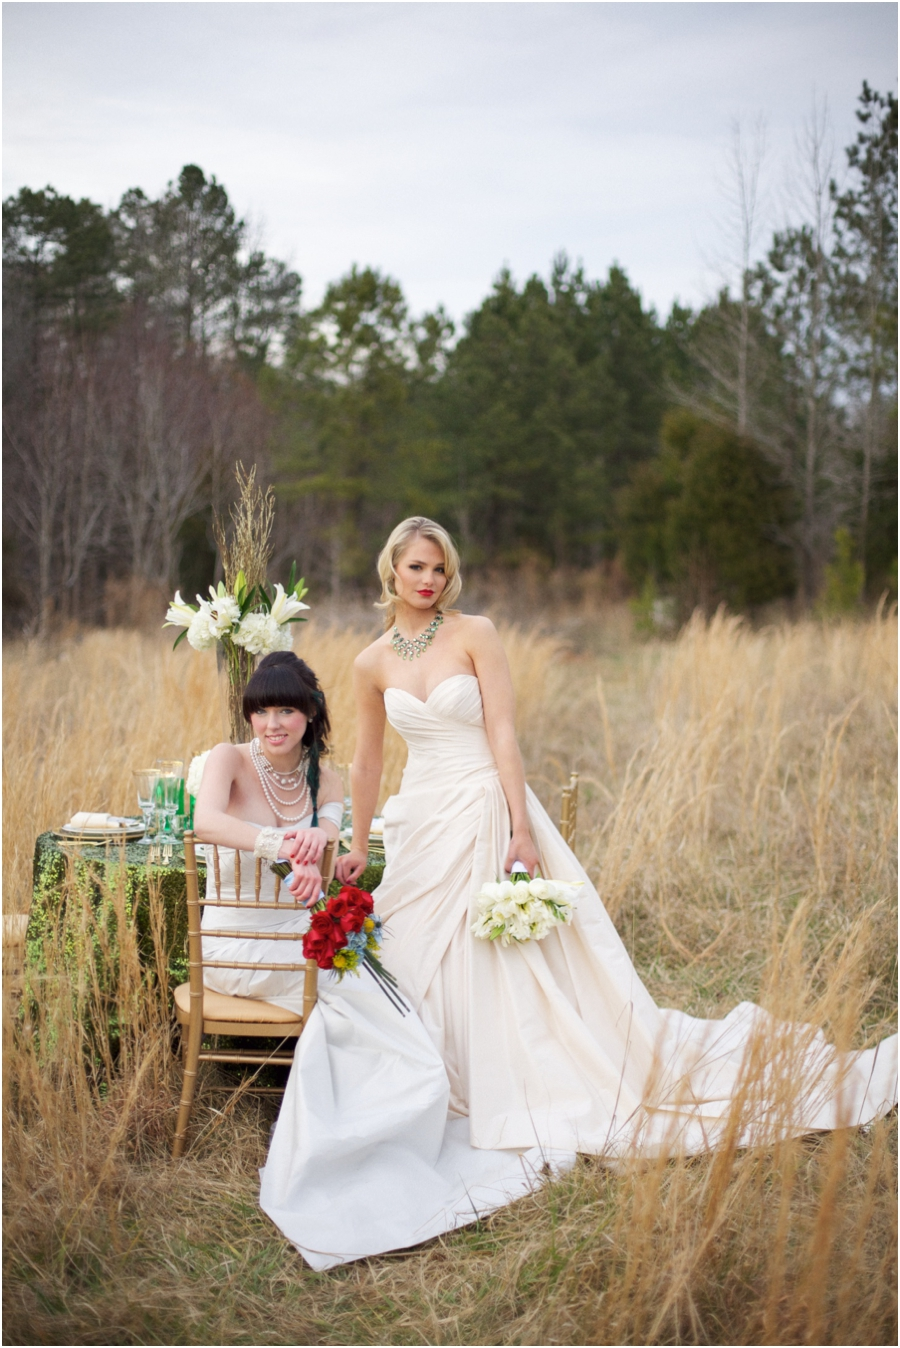 romona keveza couture wedding gowns, southern rustic wedding photography, raleigh nc